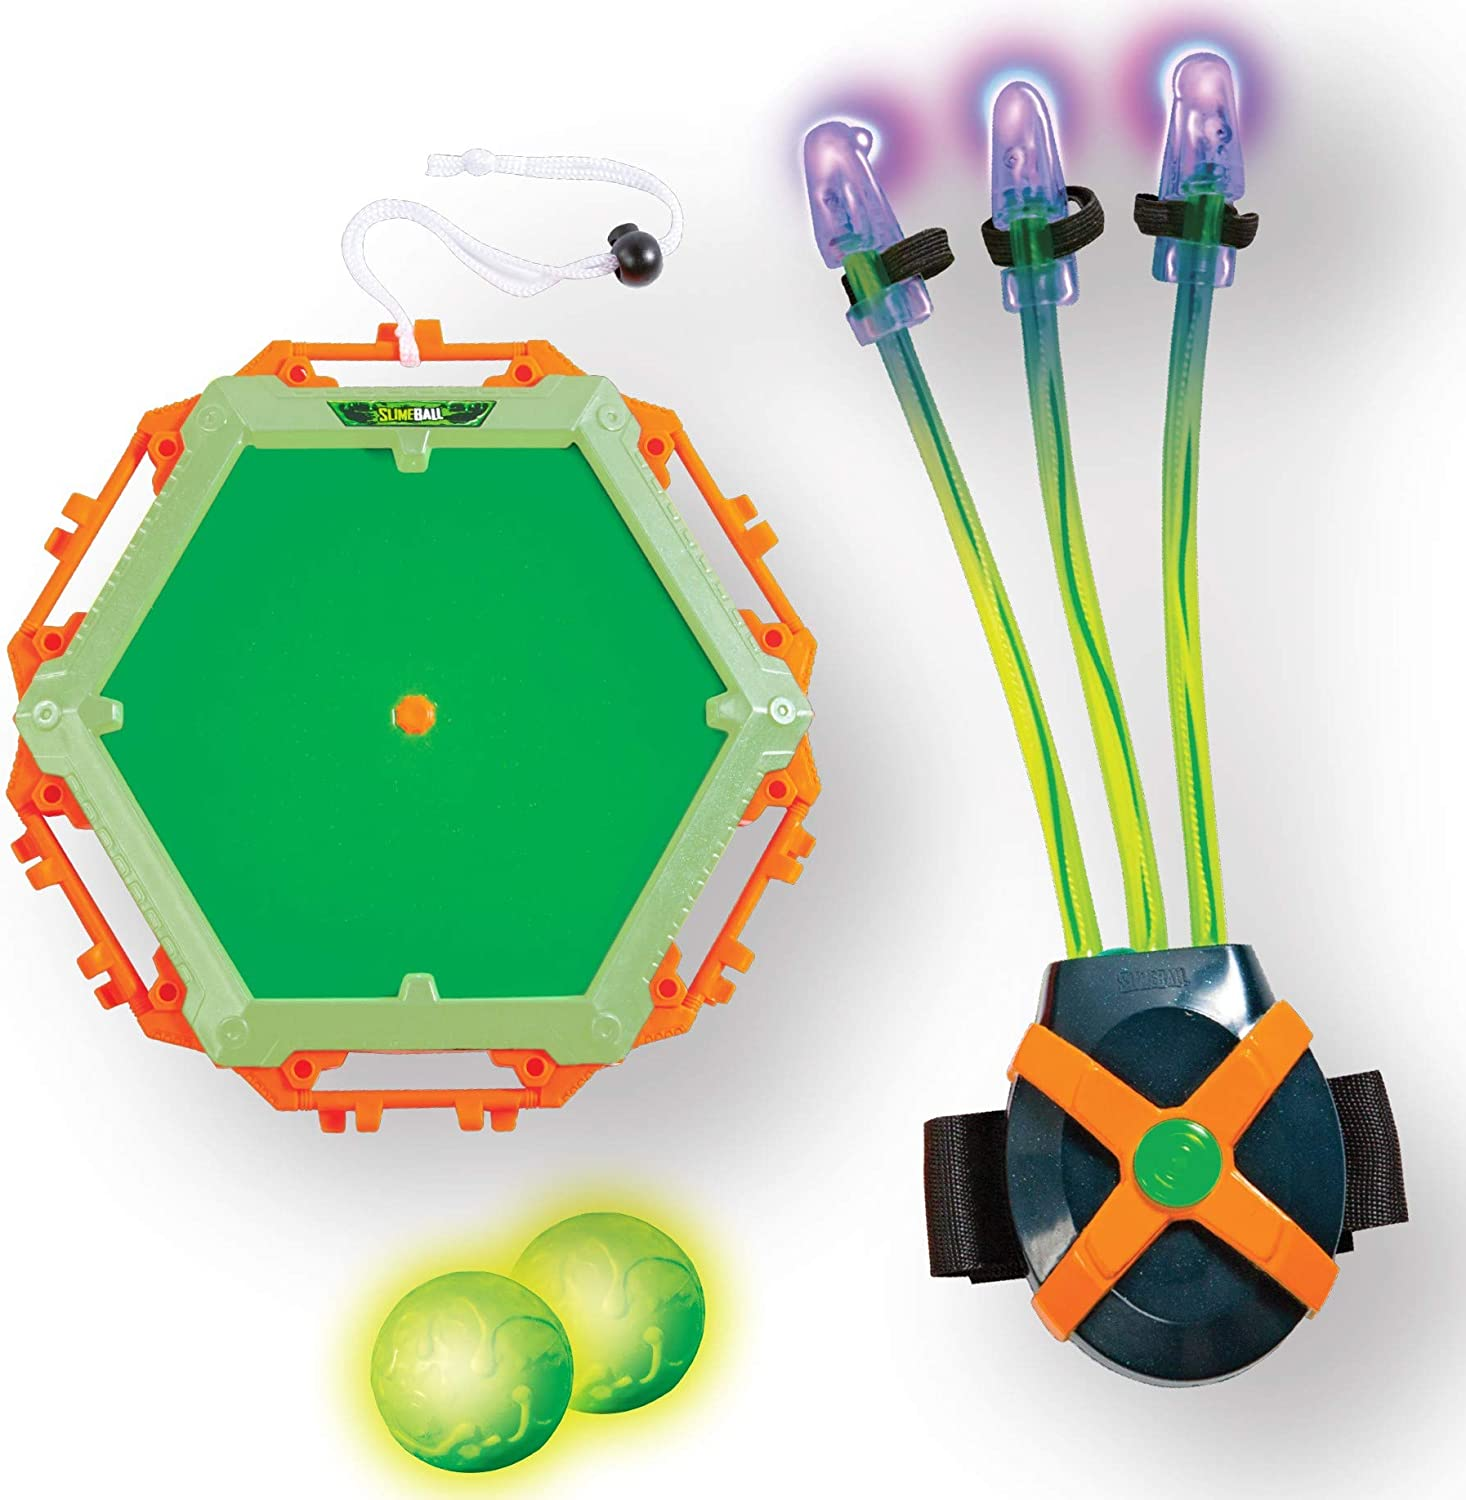 Amazon Com Diggin Slimeball Light Claw Glow Target Wearable Blacklight Glove With Sticky Slime Target Glow Balls Toys Games